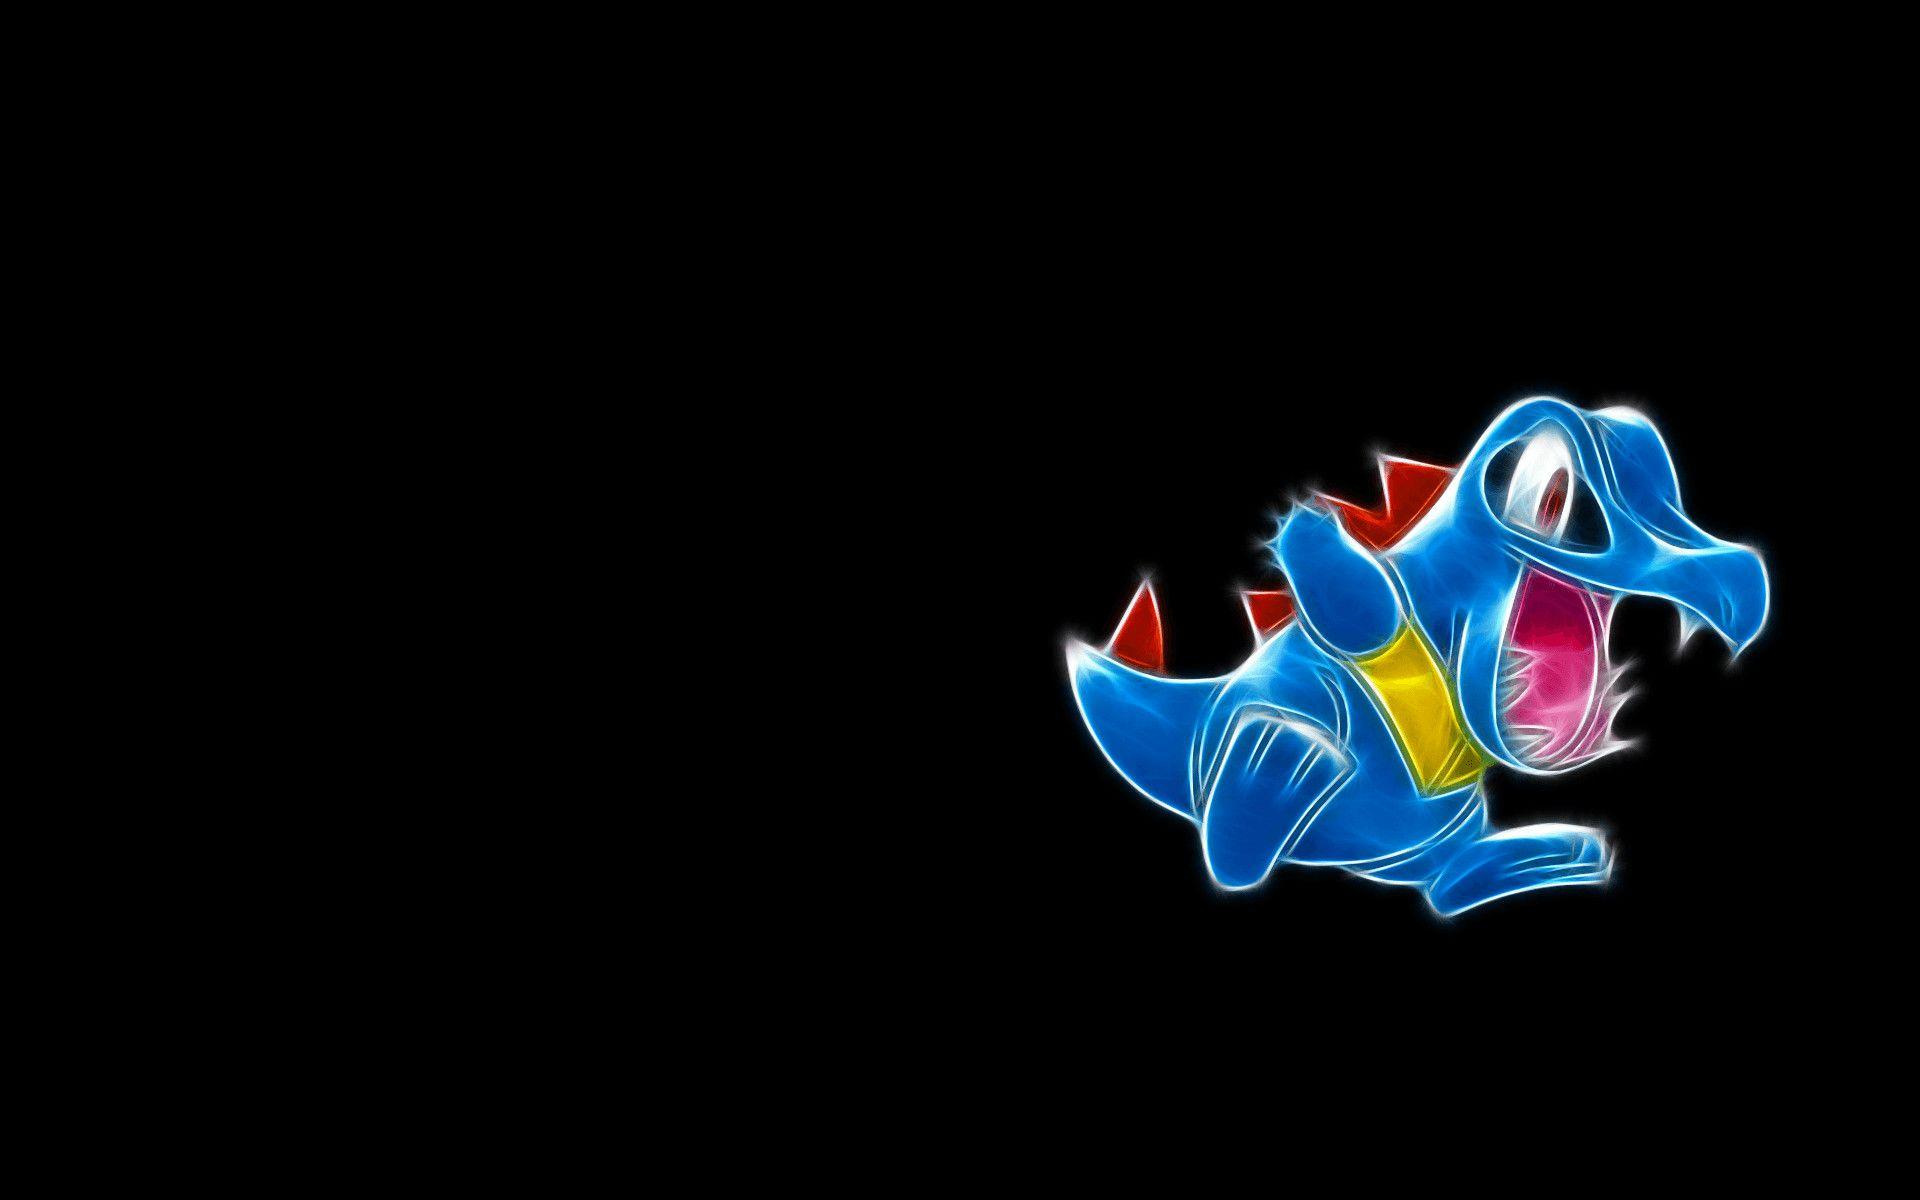 Totodile Wallpaper HD (81+ images)